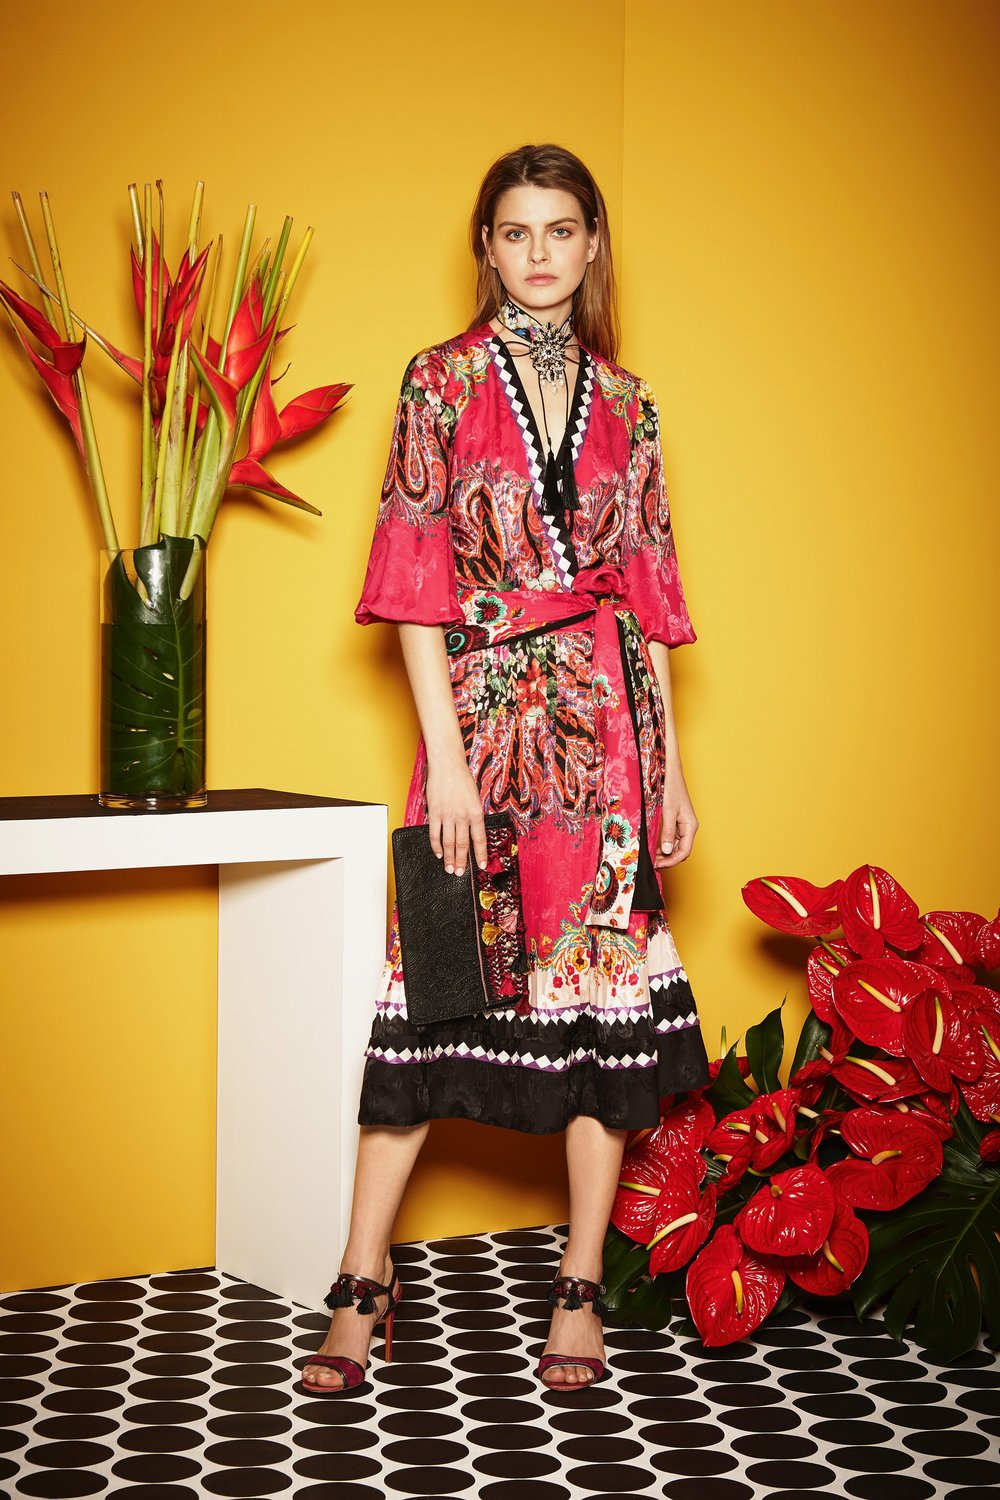 Erdem's Pre Fall Collection (Erdem)